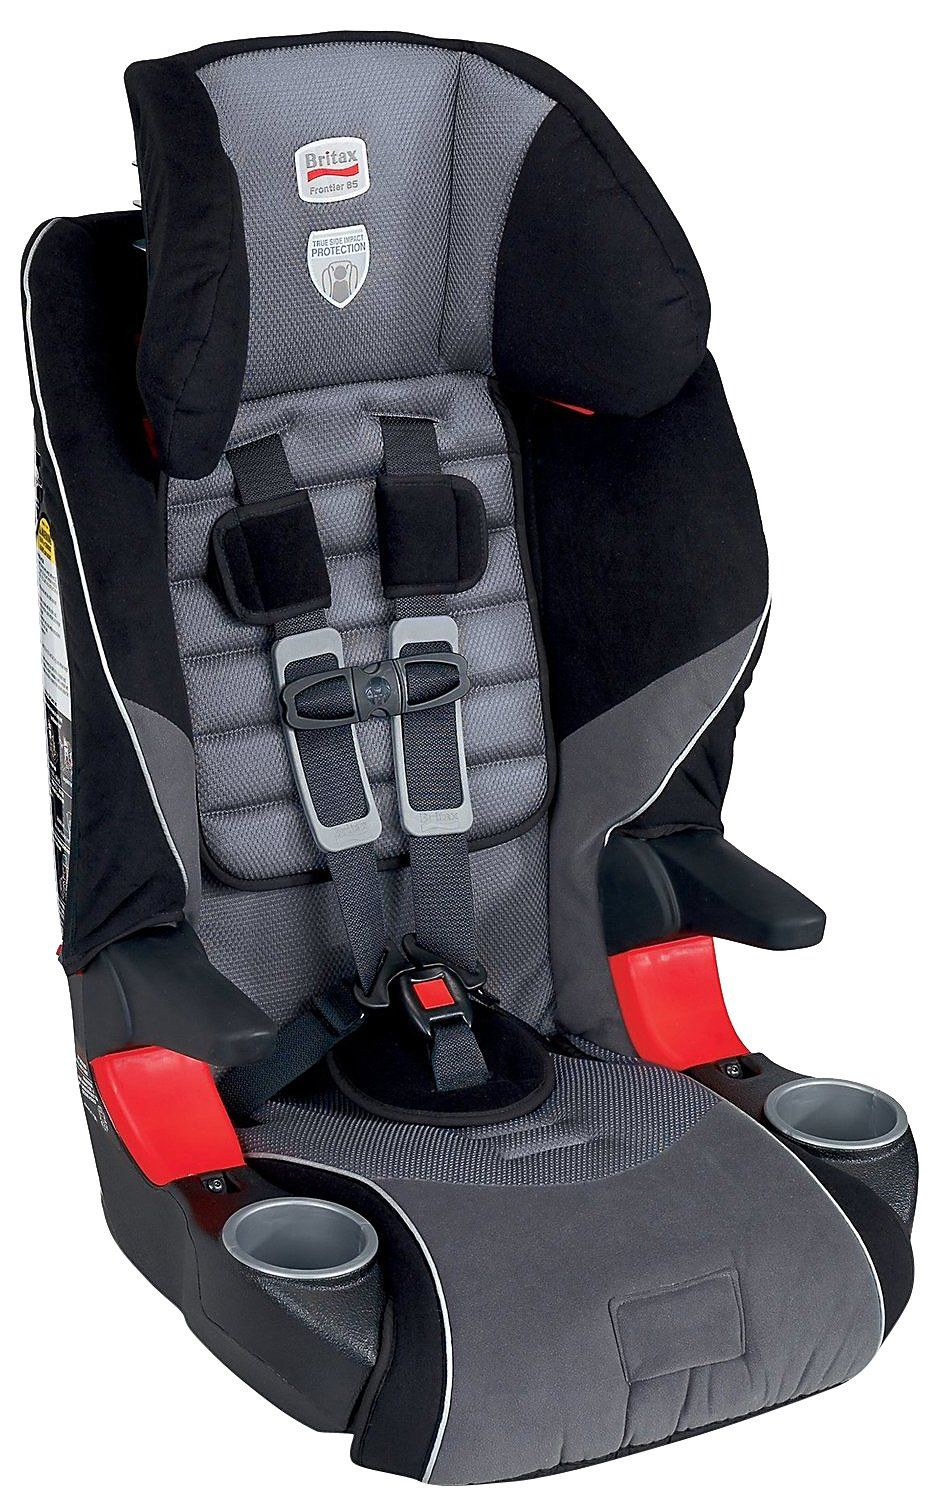 Britax Frontier 85 Booster Car Seat